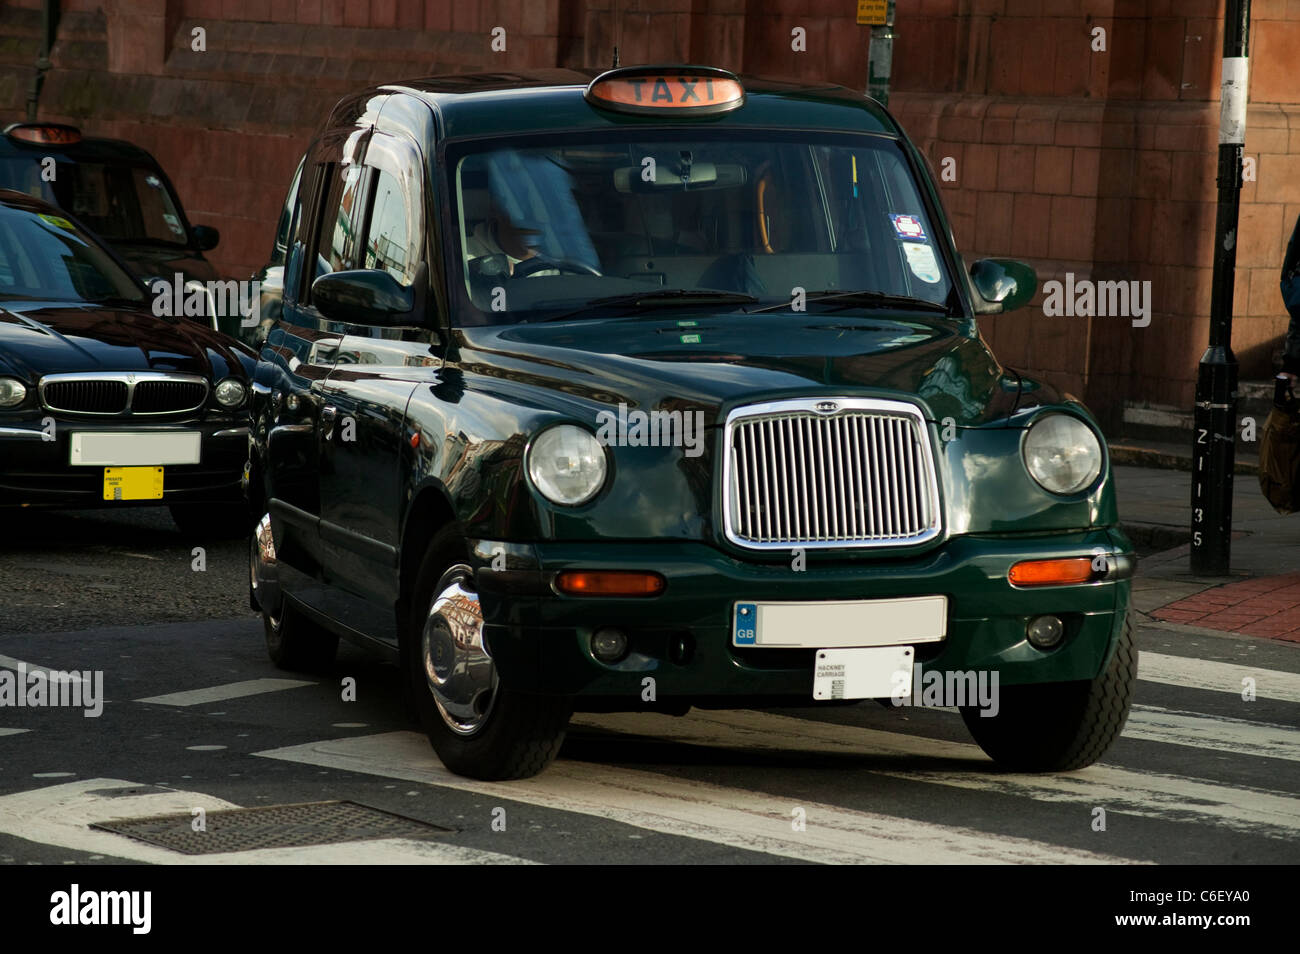 London city cab in motion - Stock Image